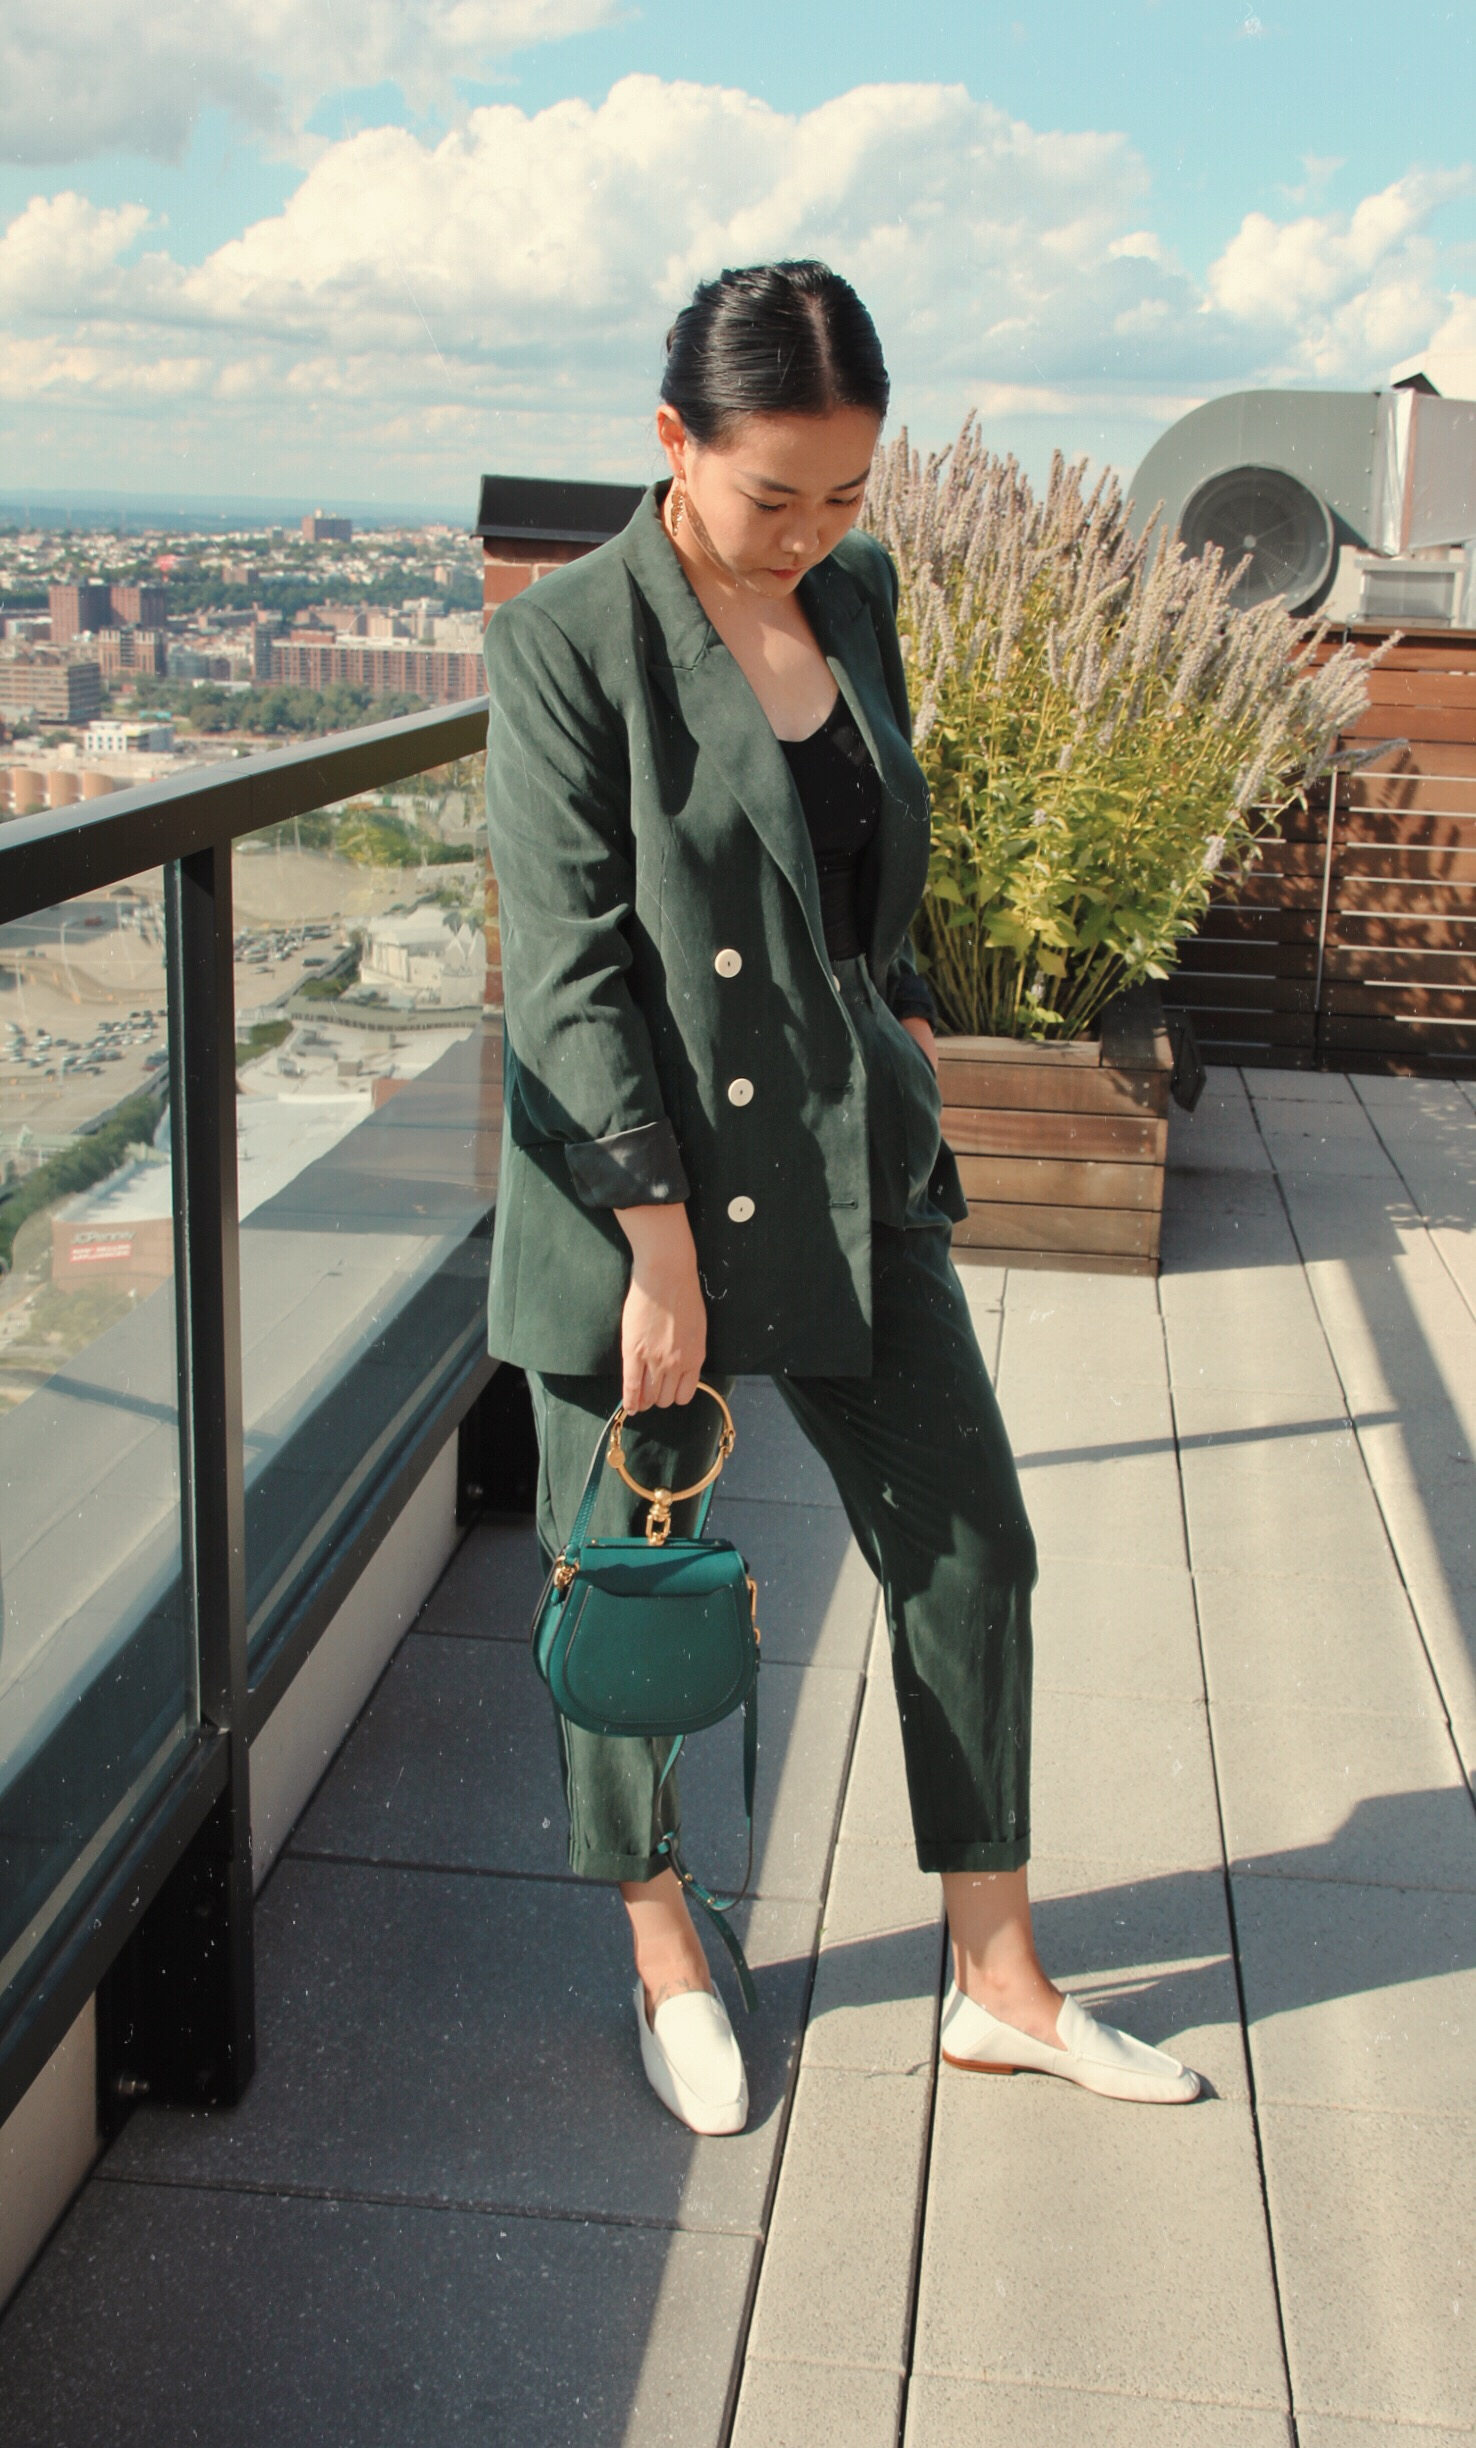 Suit Up! The Perfect Power Suit - power suit for girl boss